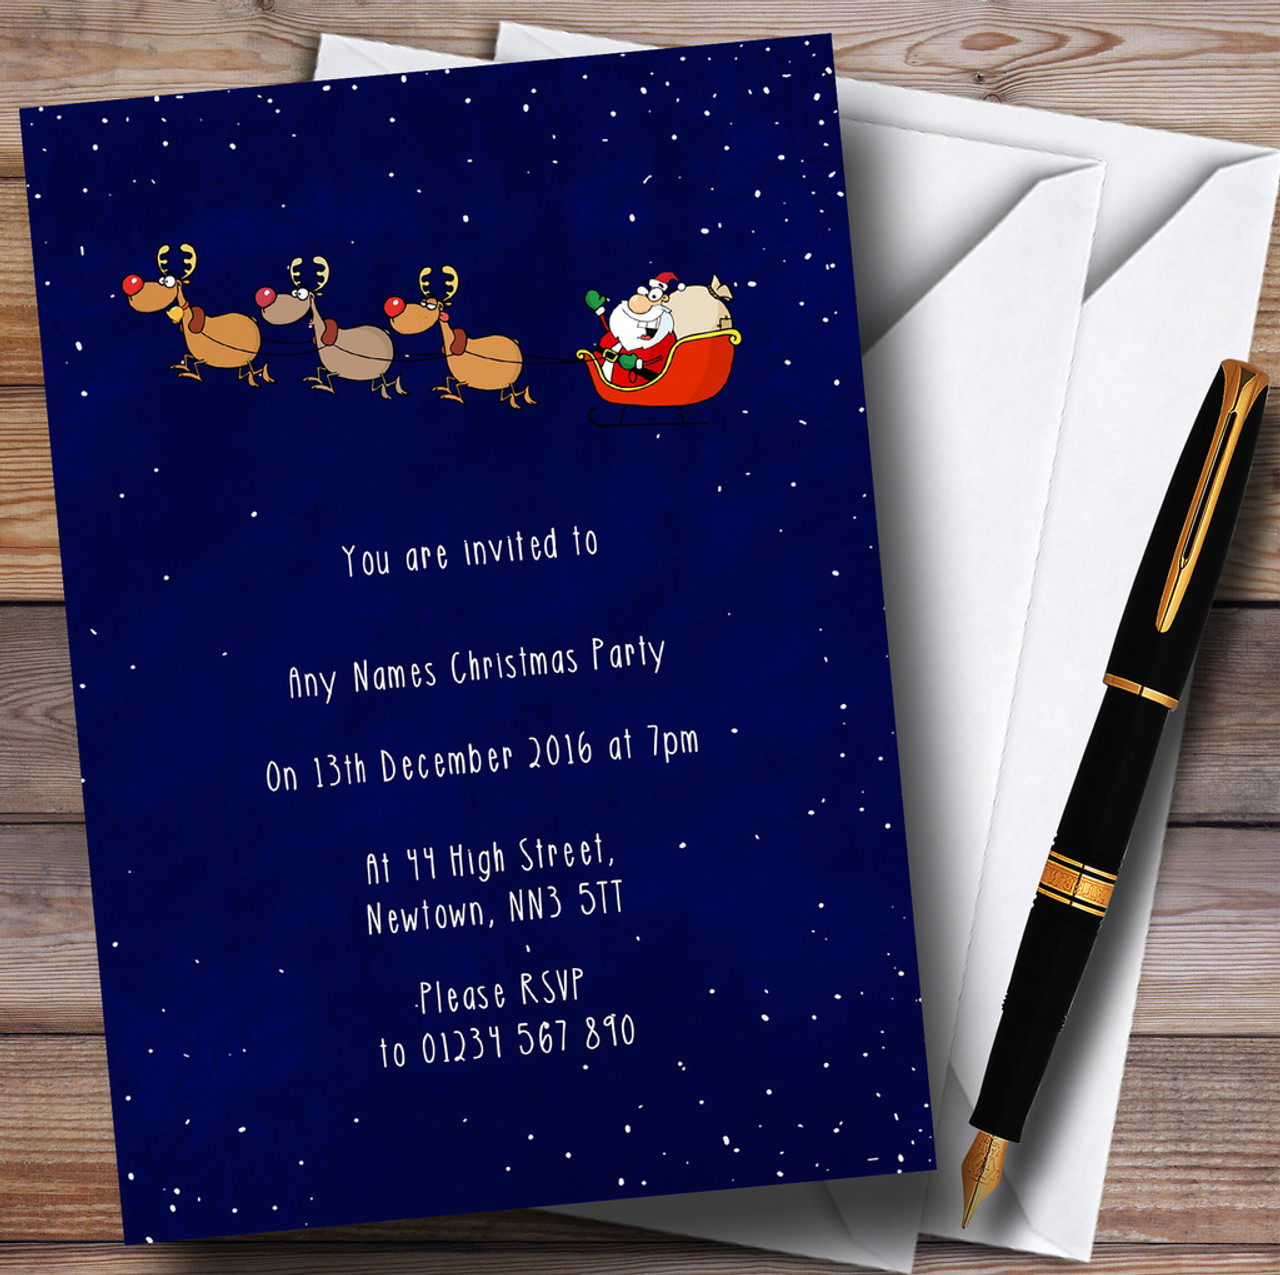 Santa Sleigh At Night Personalised Christmas Party Invitations The